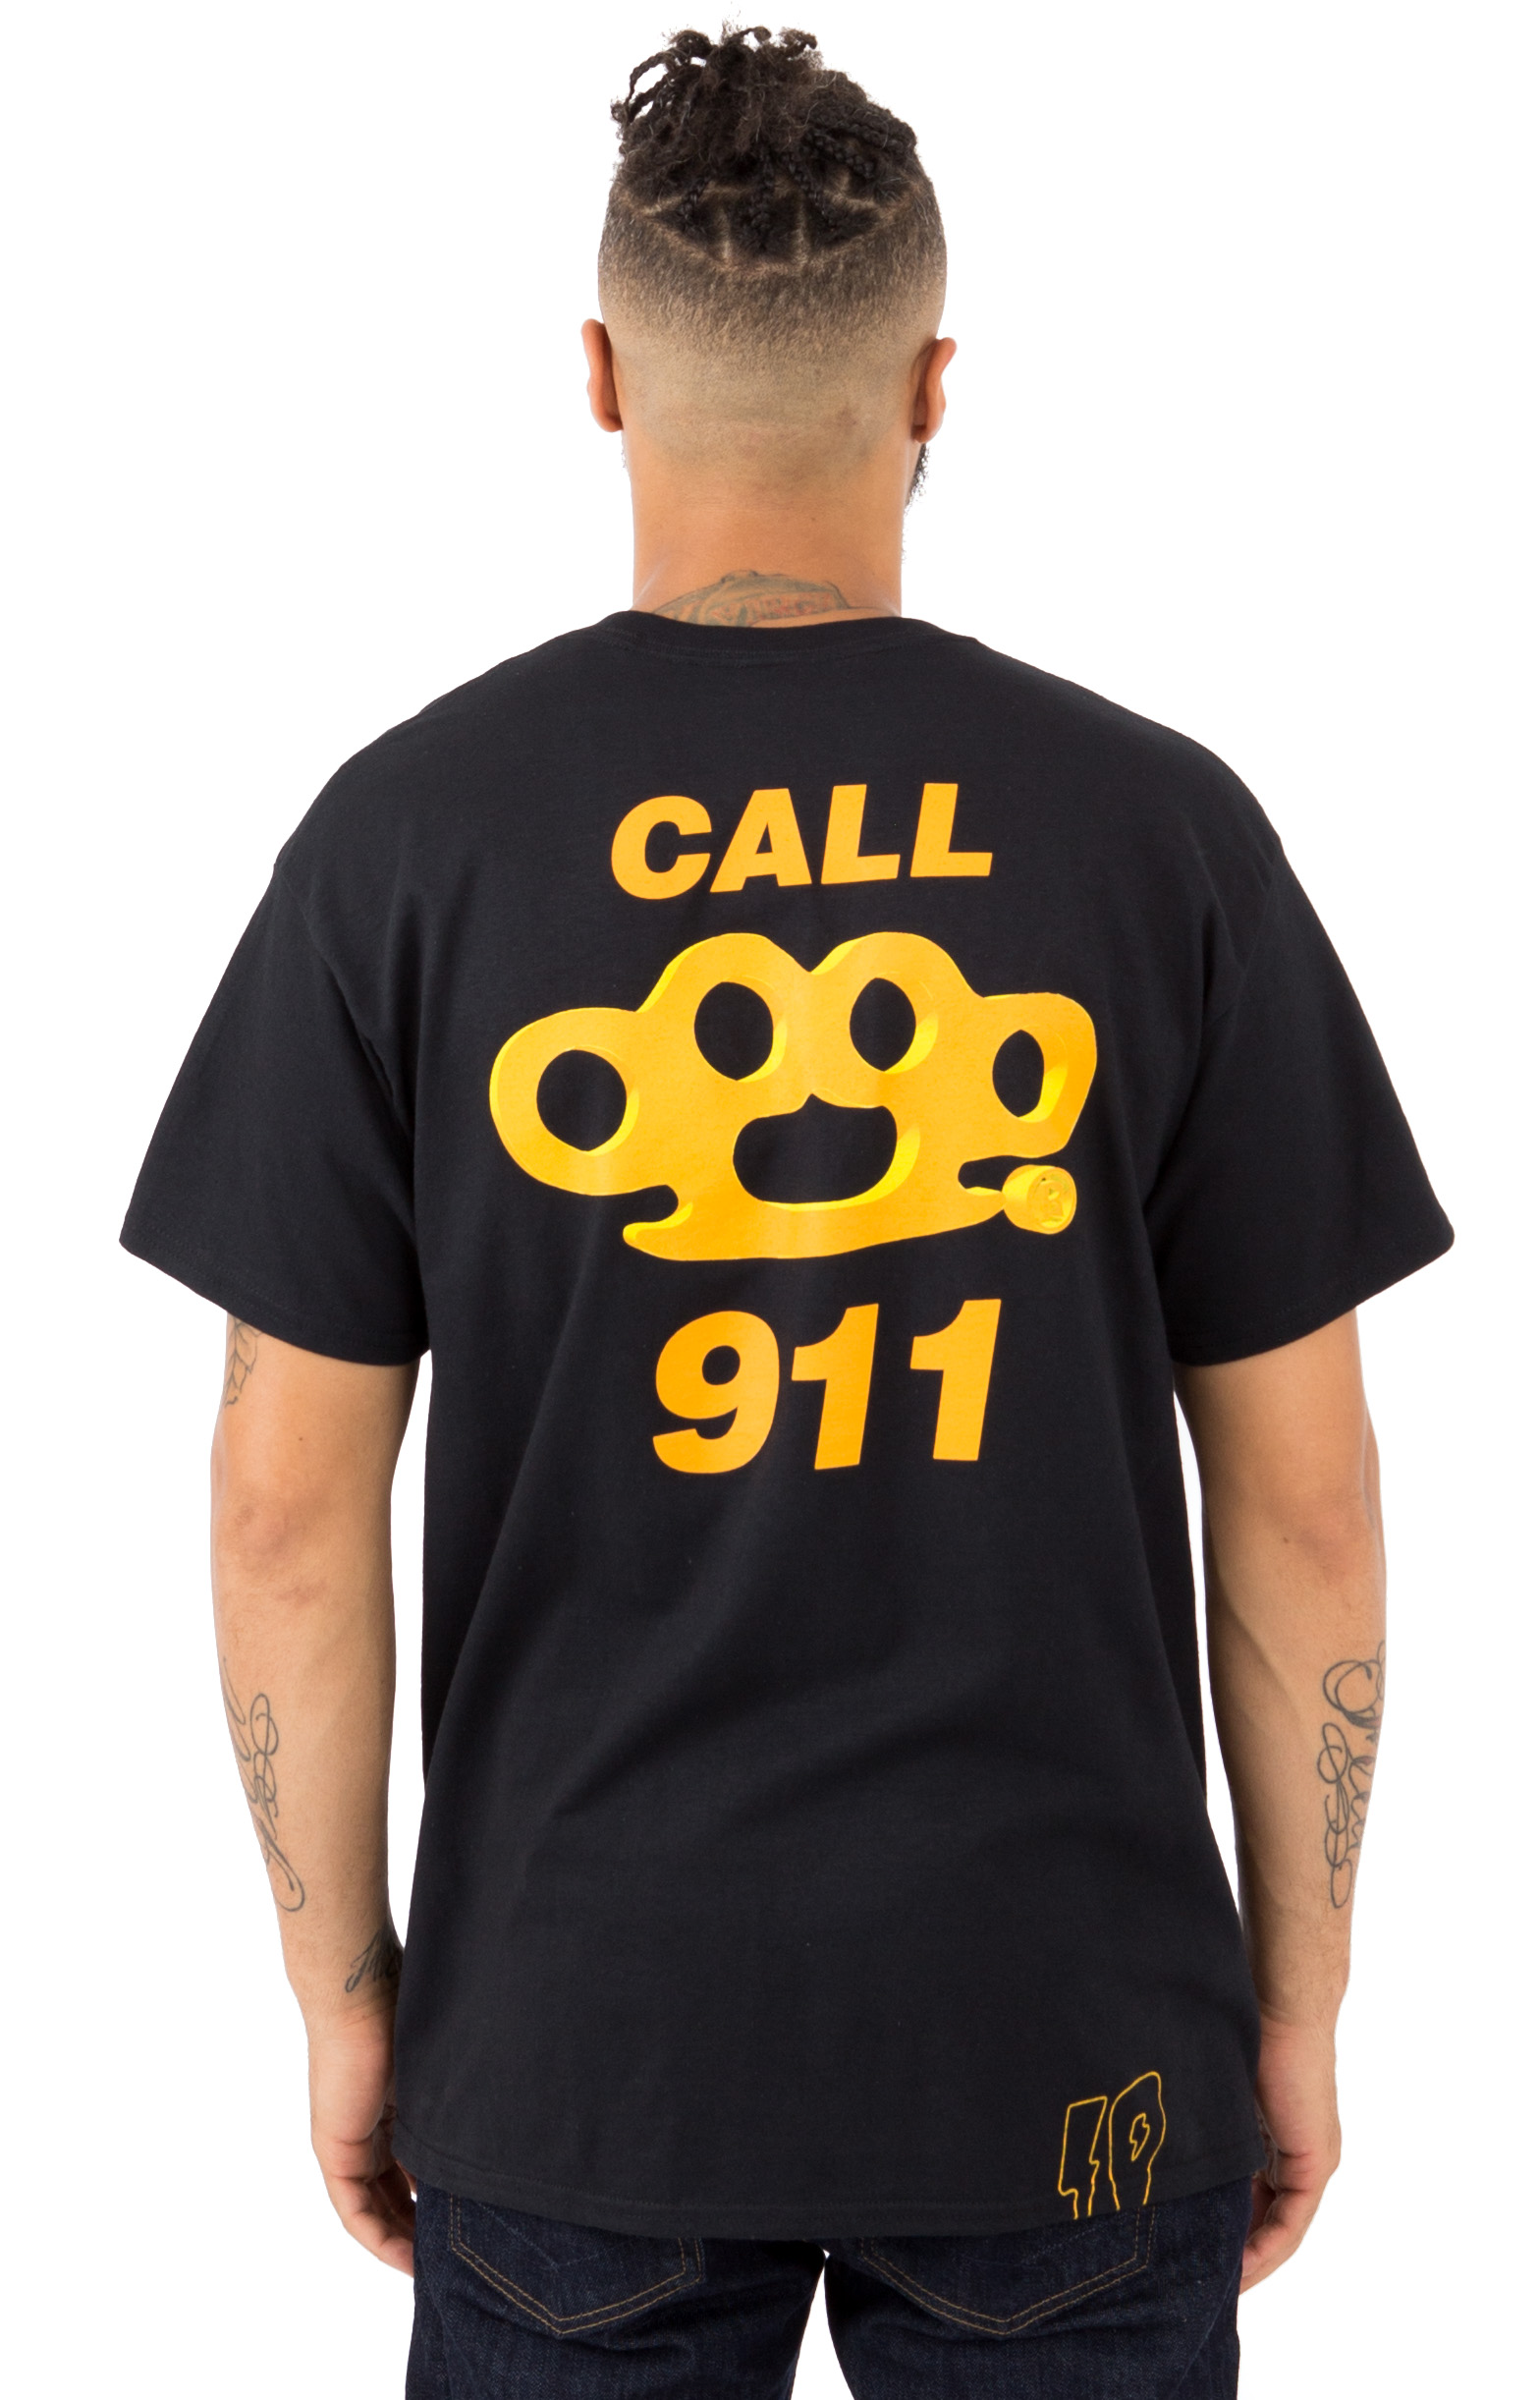 Call 911 T-Shirt - Black